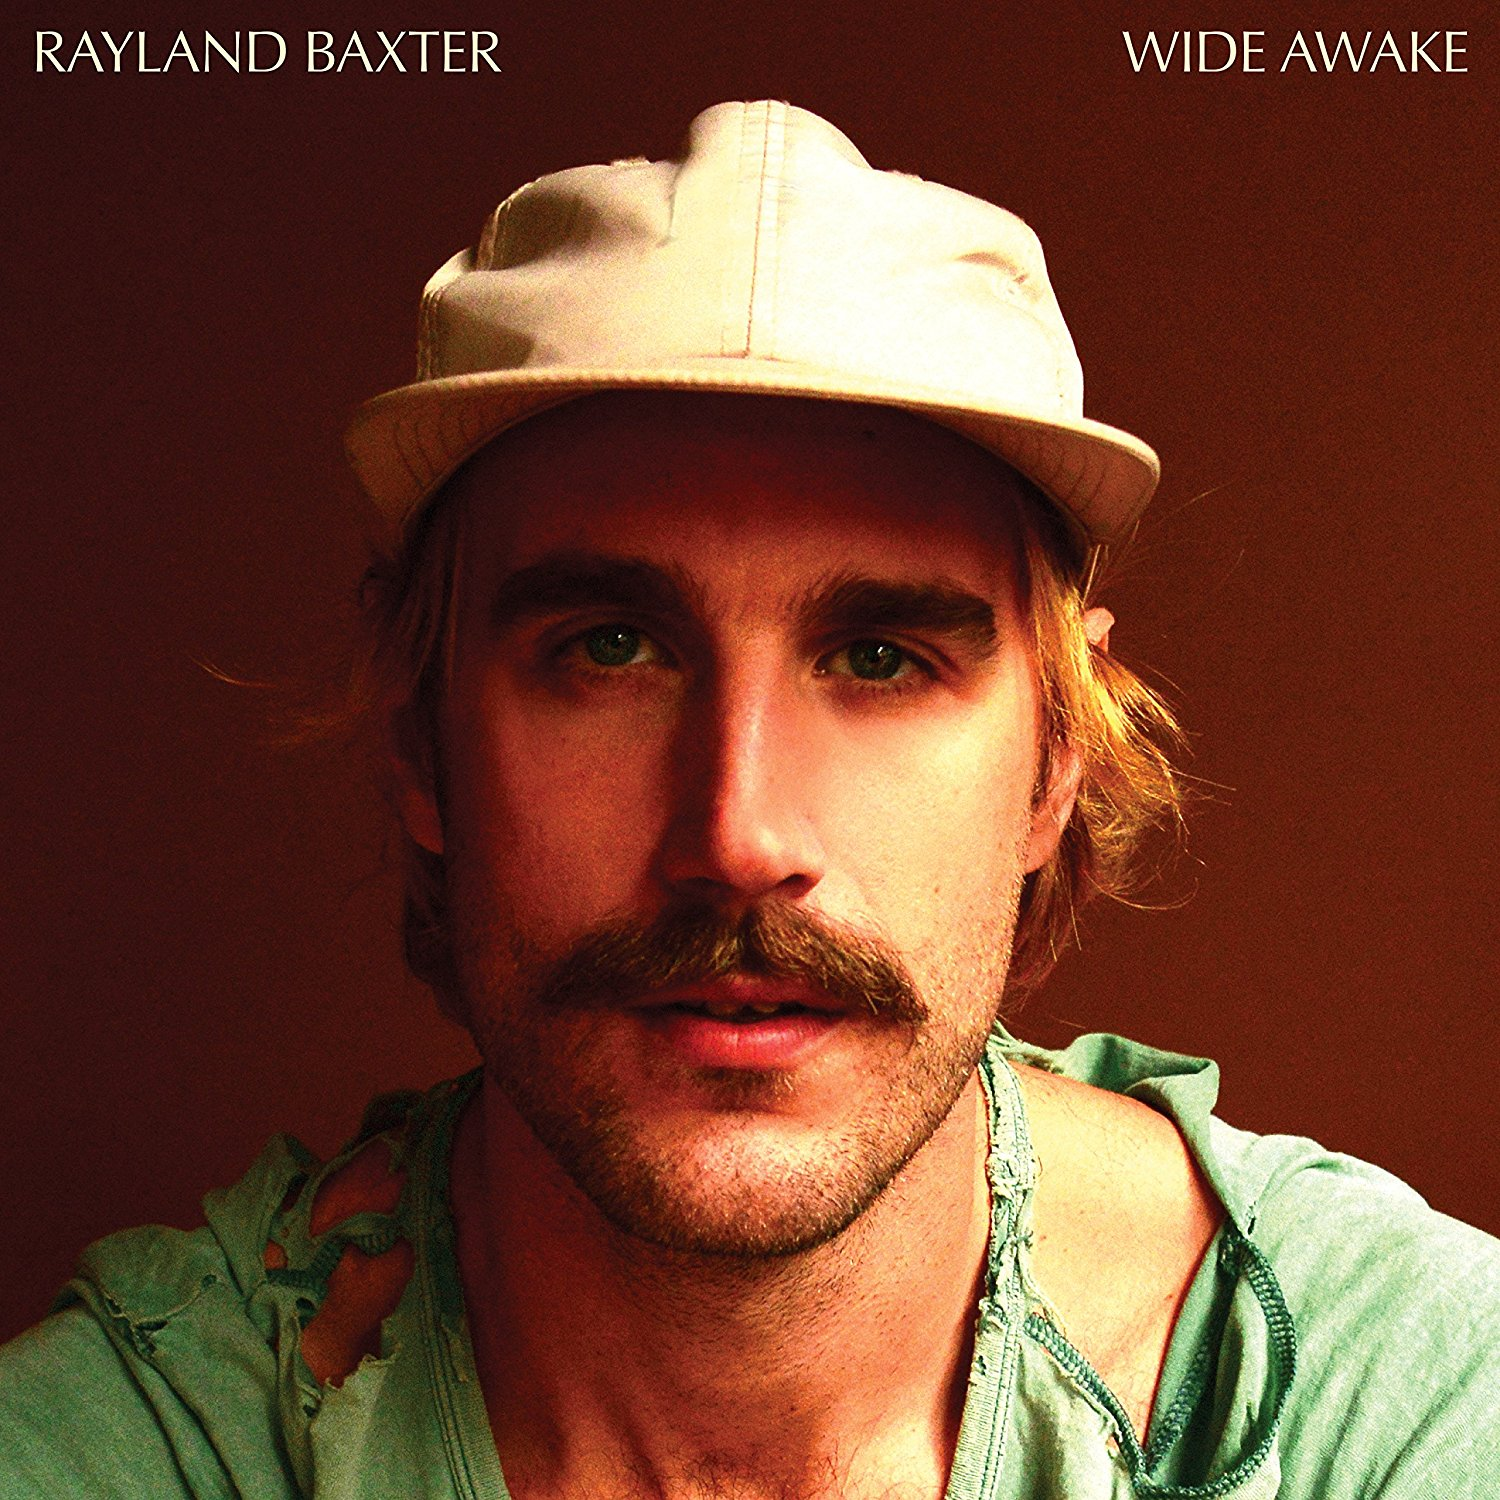 Rayland Baxter - Wide Awake [Import LP]